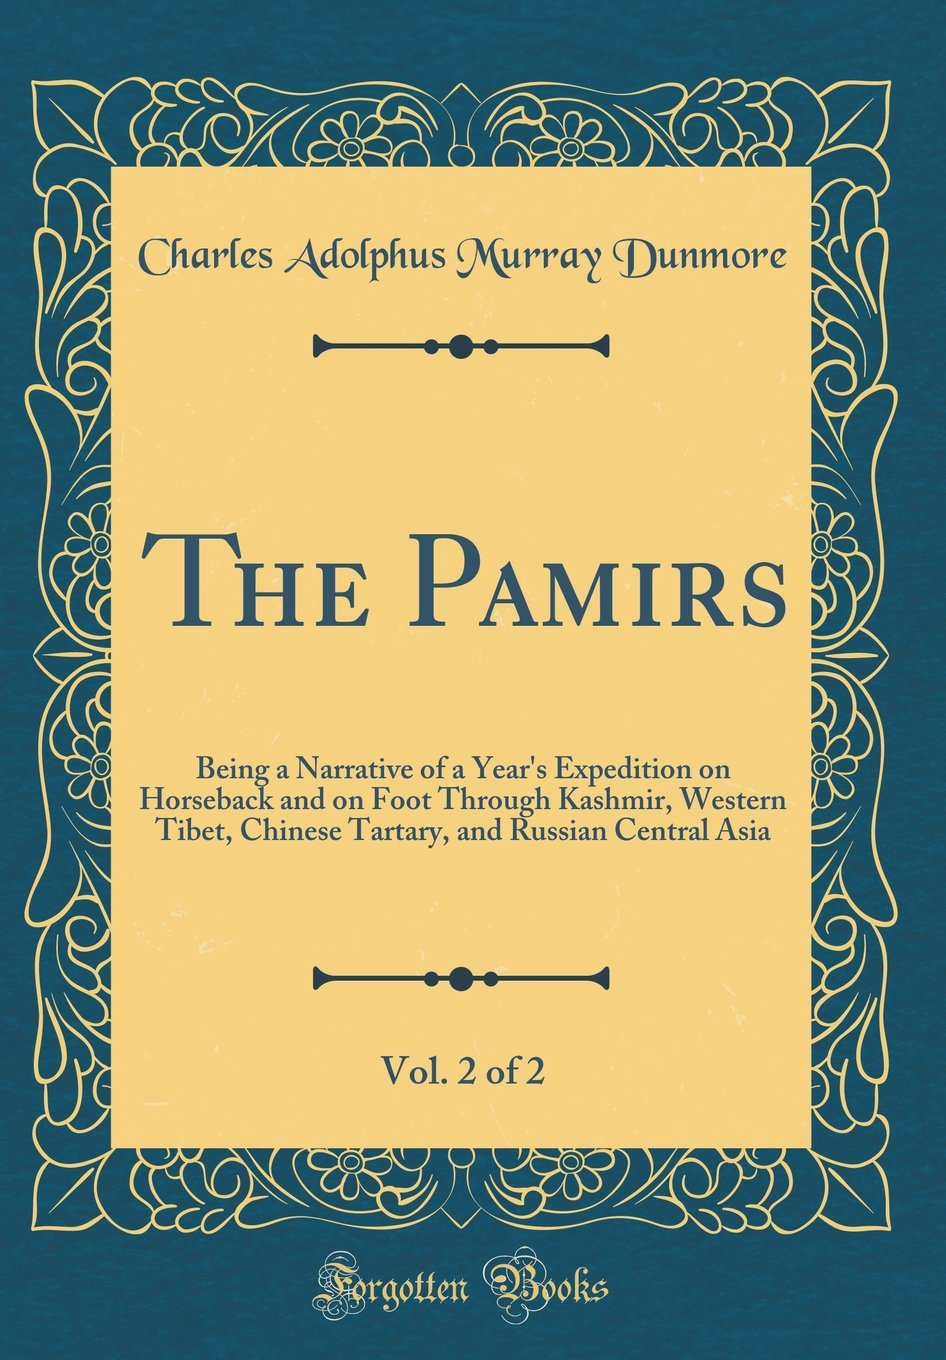 Download The Pamirs, Vol. 2 of 2: Being a Narrative of a Year's Expedition on Horseback and on Foot Through Kashmir, Western Tibet, Chinese Tartary, and Russian Central Asia (Classic Reprint) ebook